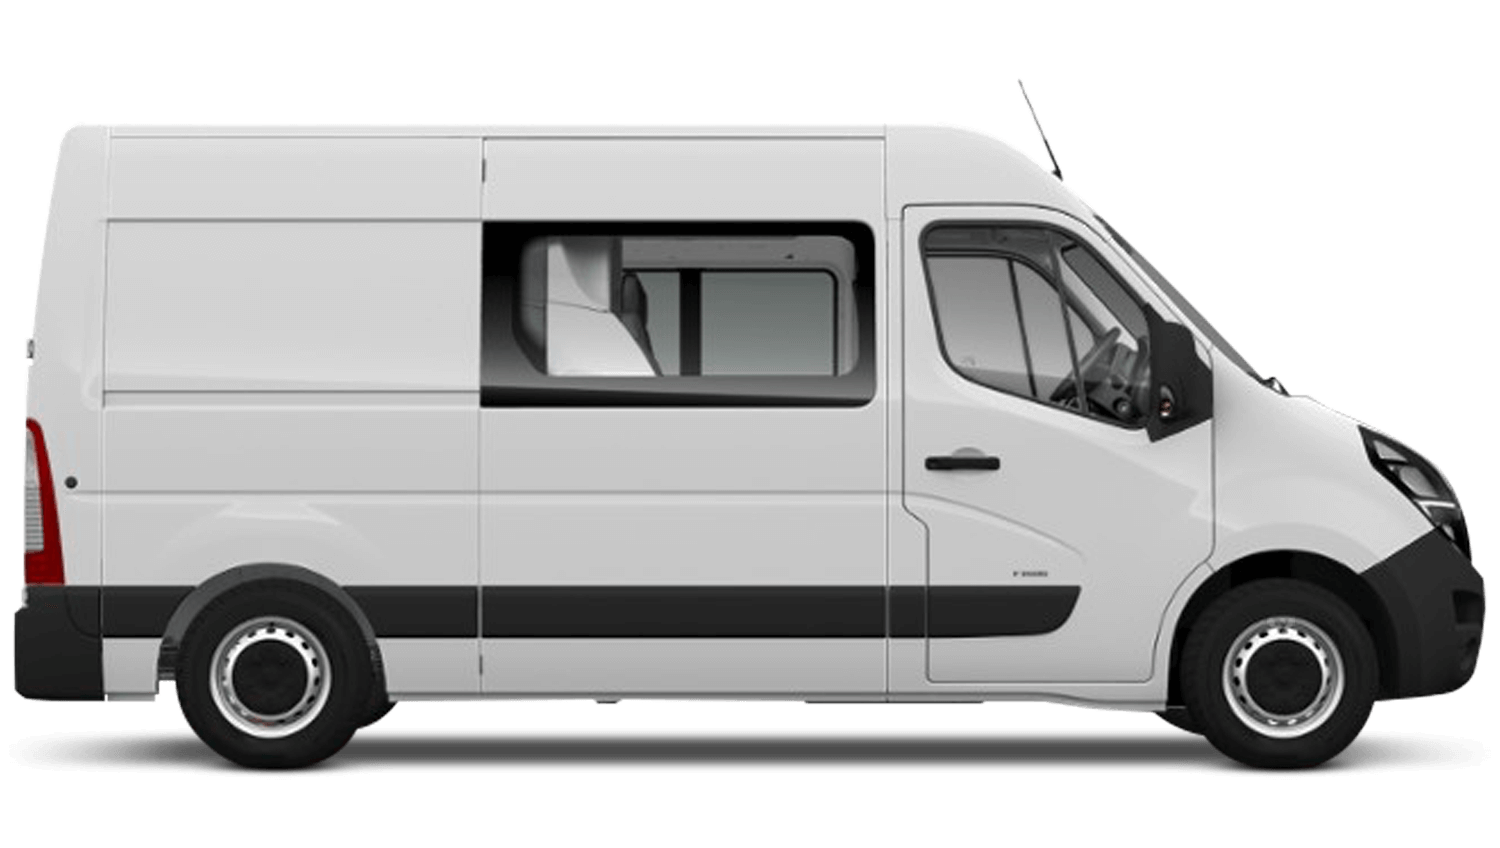 Polar White (Solid) New Vauxhall Movano